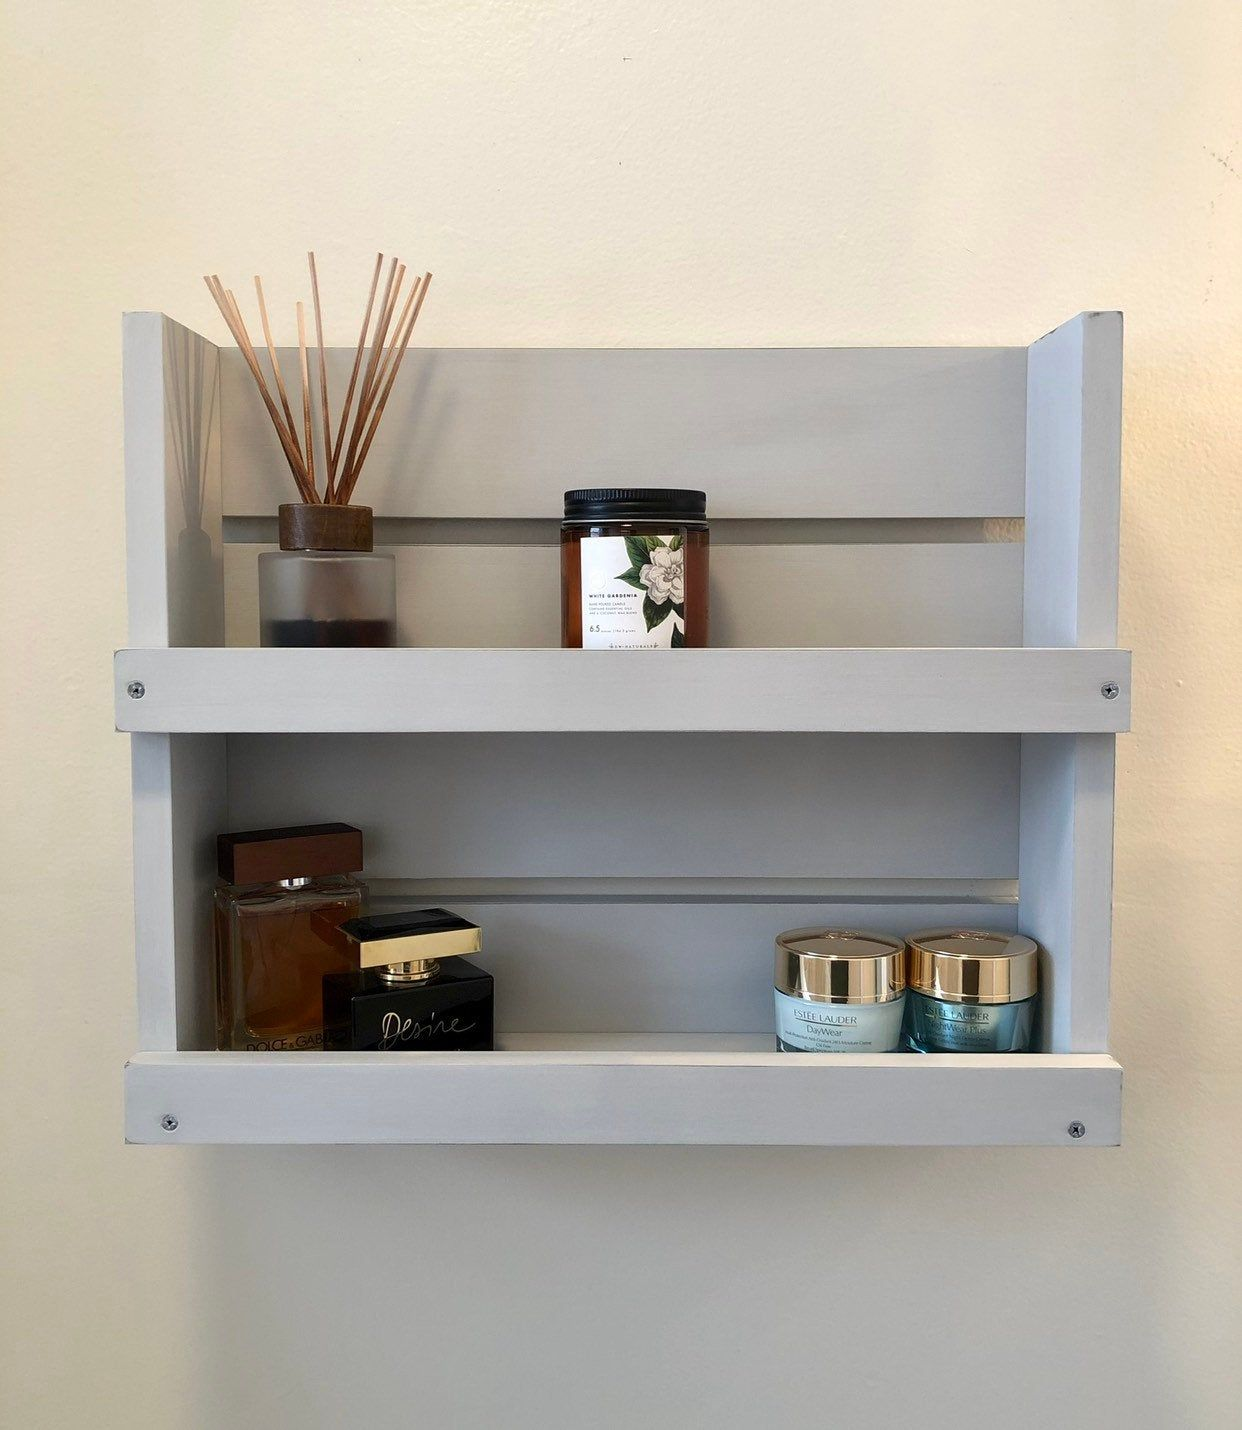 Bathroom Gray Lightly Distressed Shelf Shelves Wall Mounted Wood